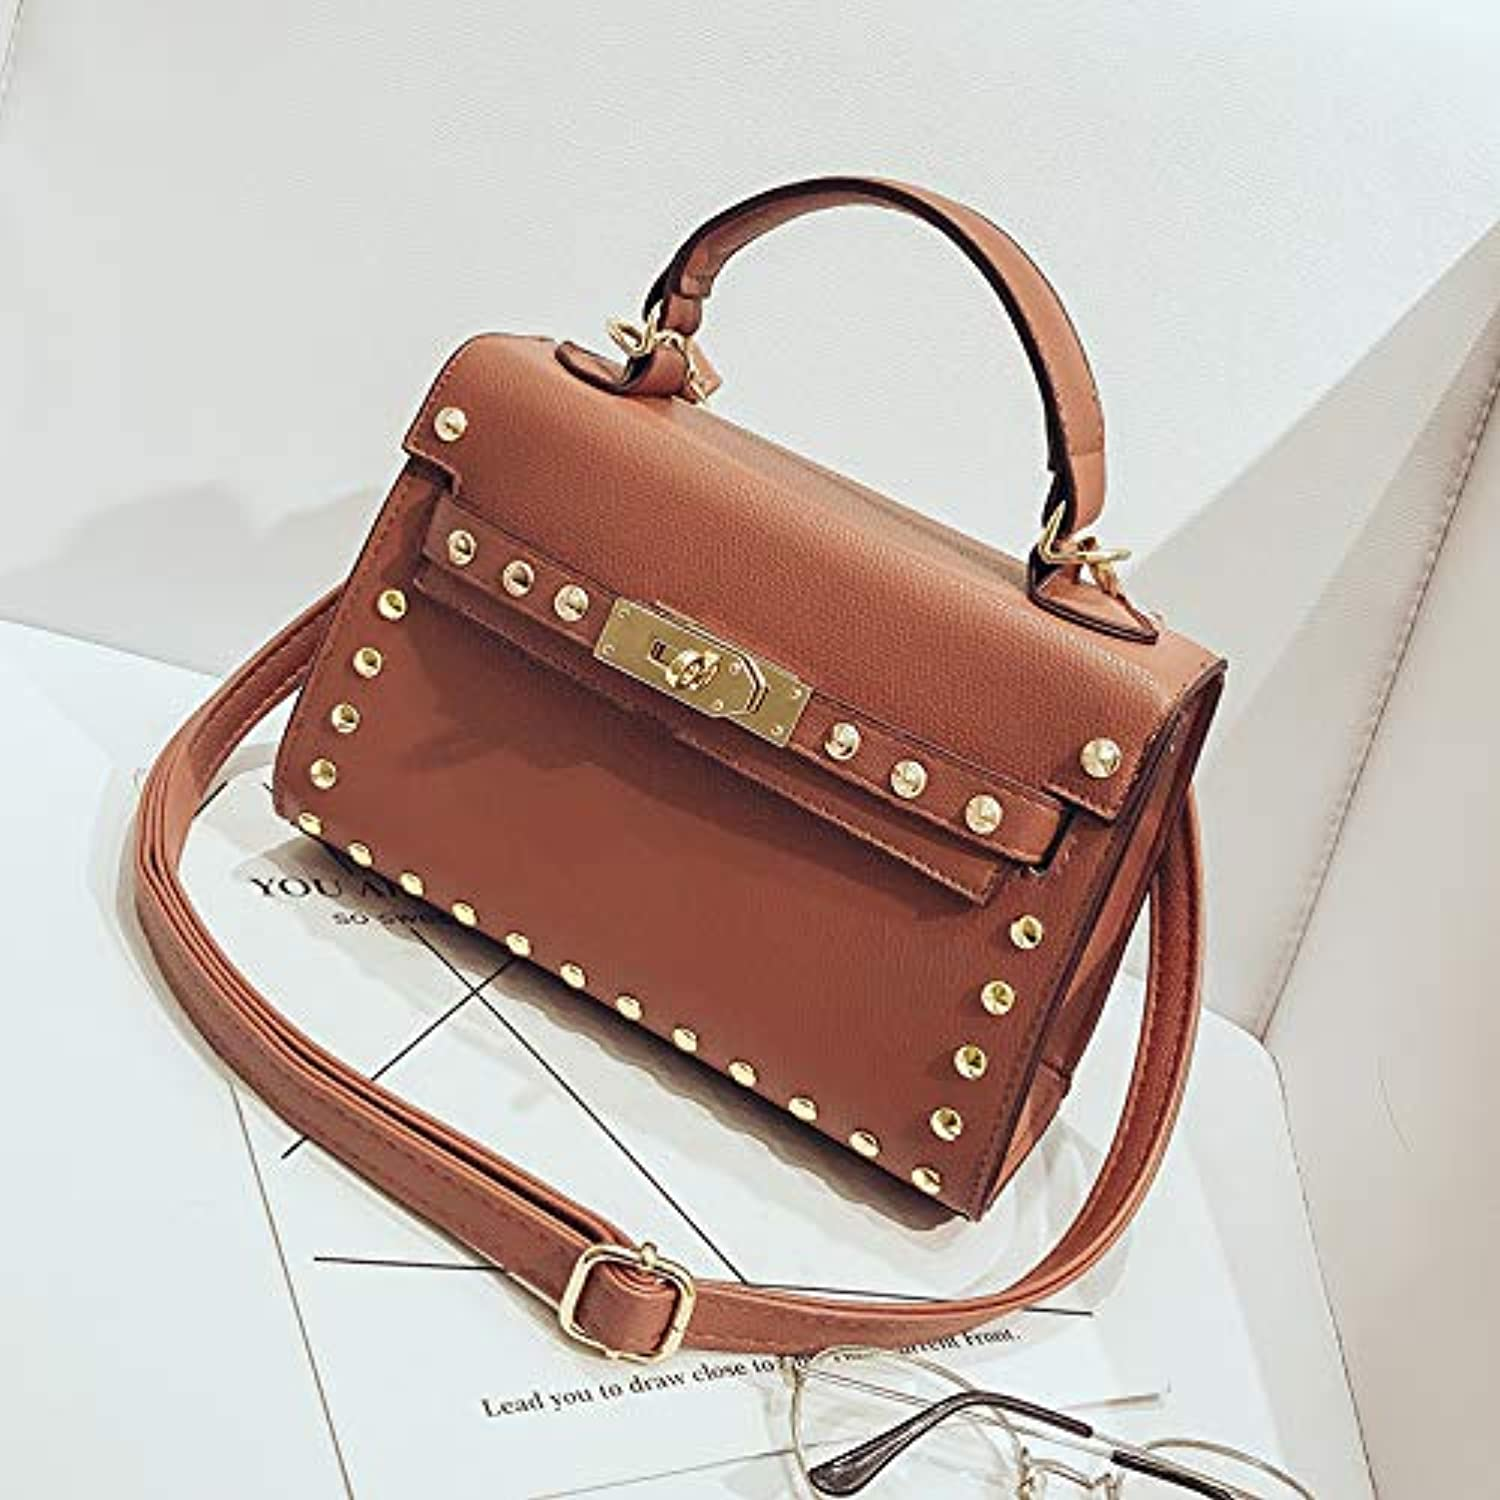 WANGZHAO Women's Bag Skew Bag Handbag, Single Shoulder Bag Rivet Bag, Fashion Simple Trend